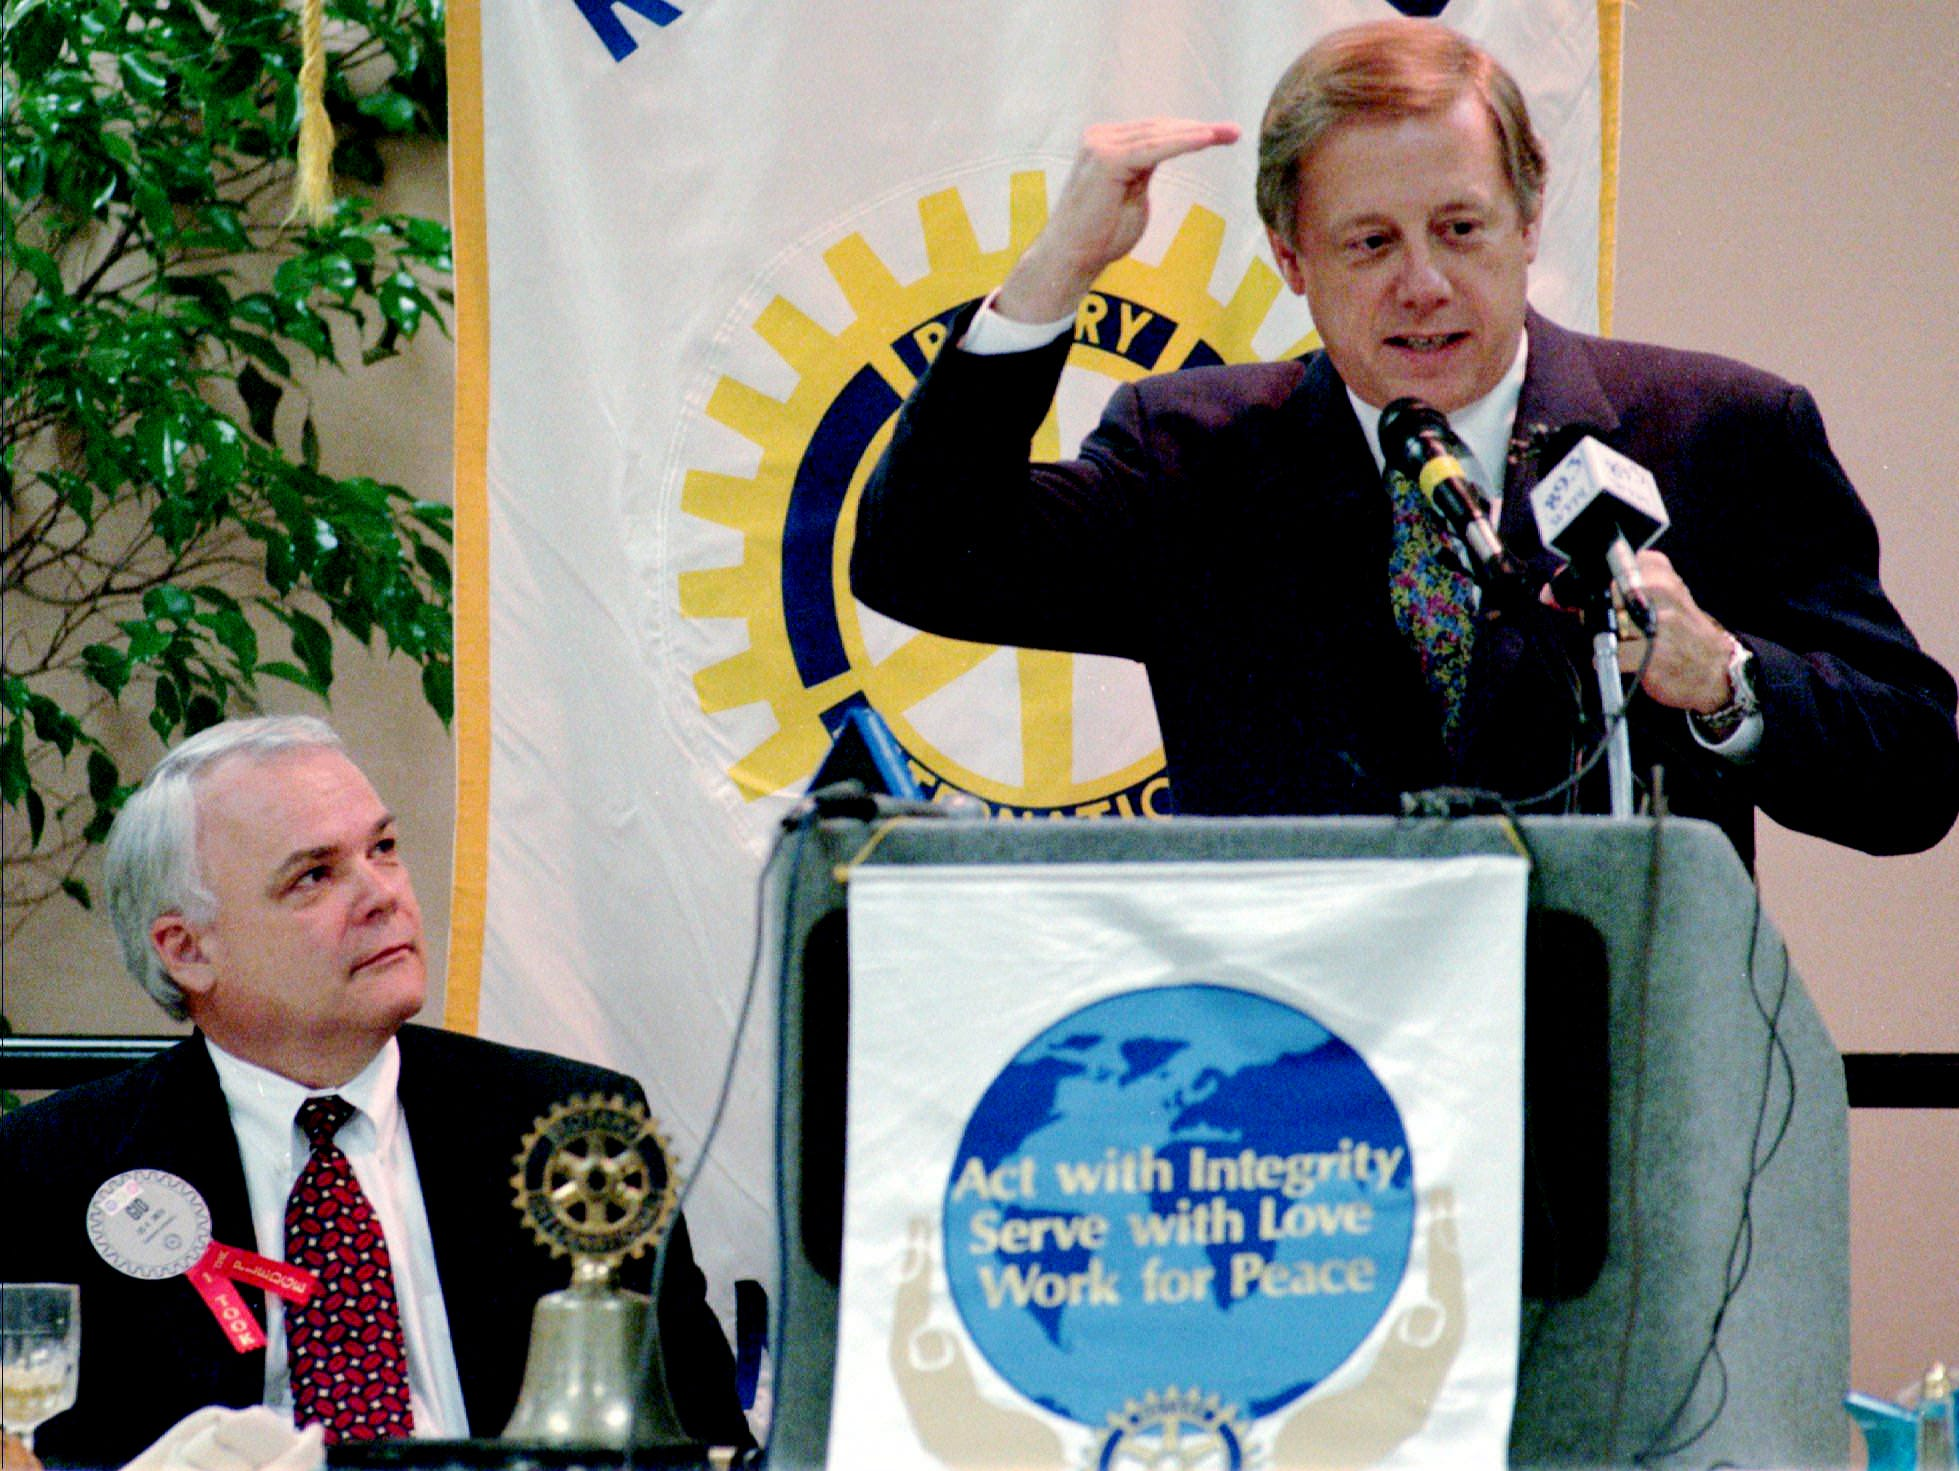 Nashville Mayor Phil Bredesen, right, speaks Nov. 14, 1995 to the Rotary Club in Memphis, Tenn. Bredesen asked club members to support his city's attempt to attract the Houston Oilers of the NFL. Club member Gid Smith, left, looks on.